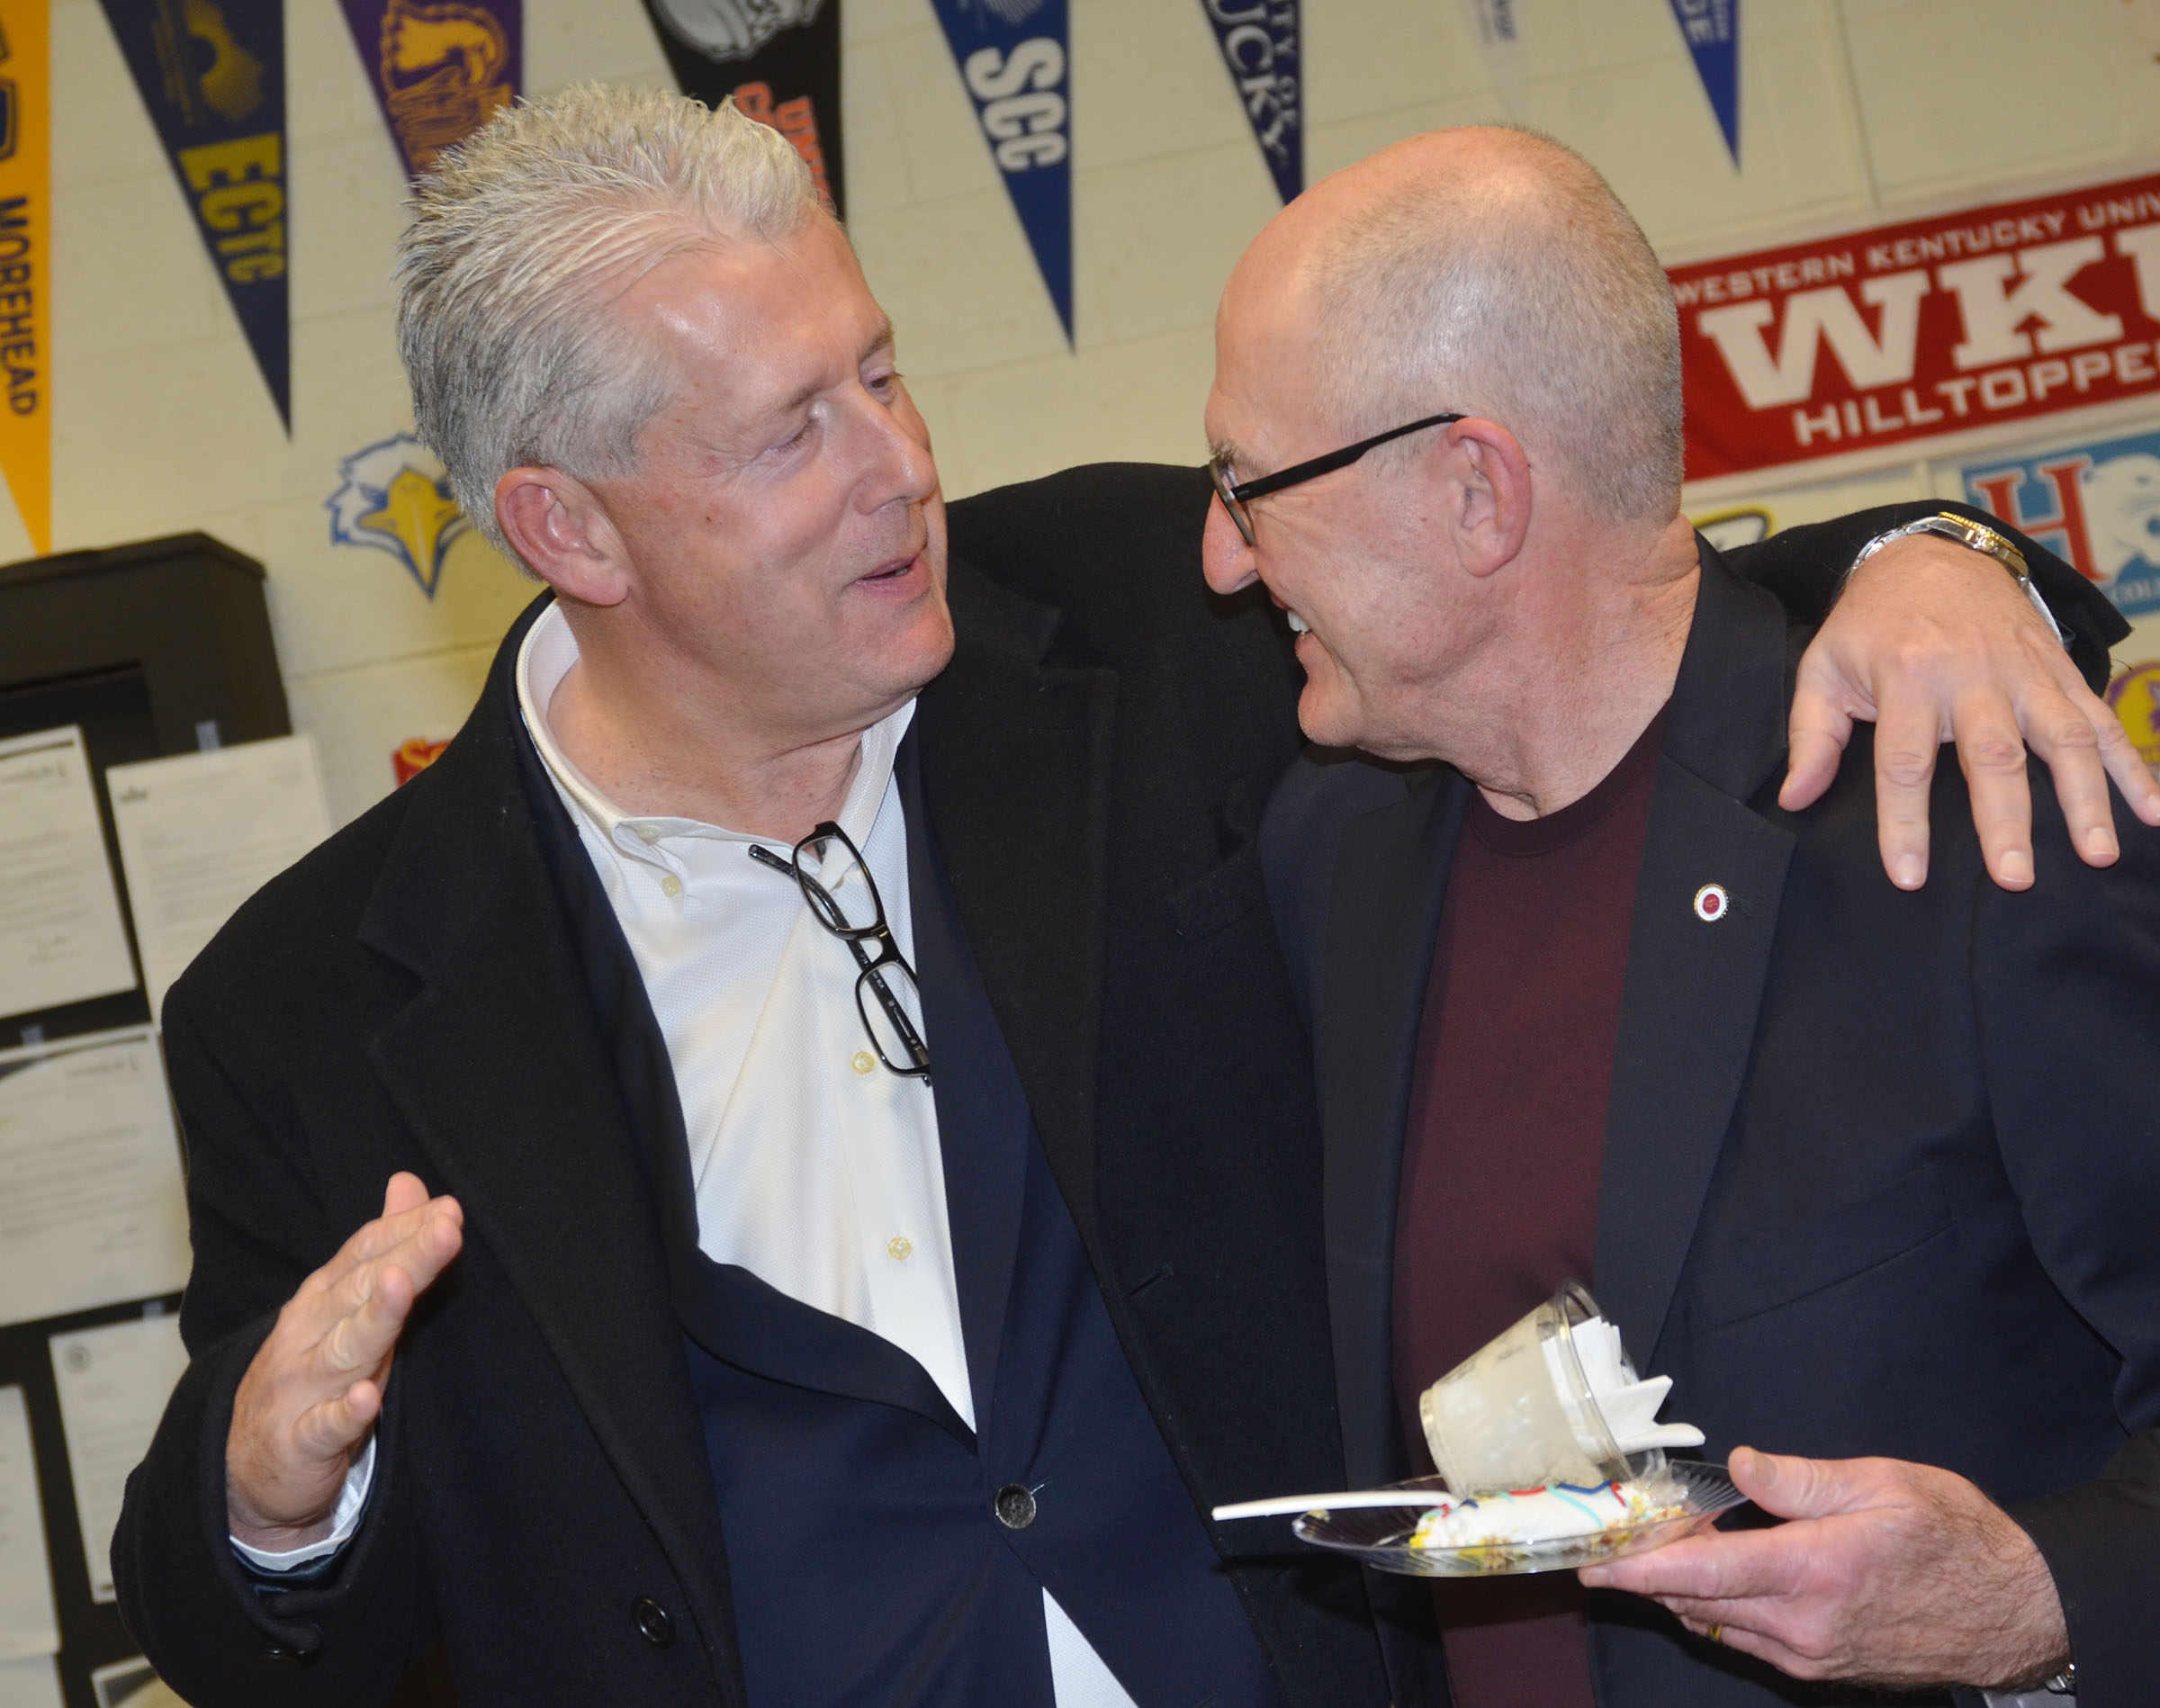 Chuck Vaughn, former Campbellsville Independent Schools superintendent, was inducted into the 5th Region Athletic Director's Hall of Fame on Saturday, Feb. 4. He was honored during the CHS boys' basketball game versus Metcalfe County and then at a reception. Above, Vaughn, at right, talks with his brother Denny Vaughn.